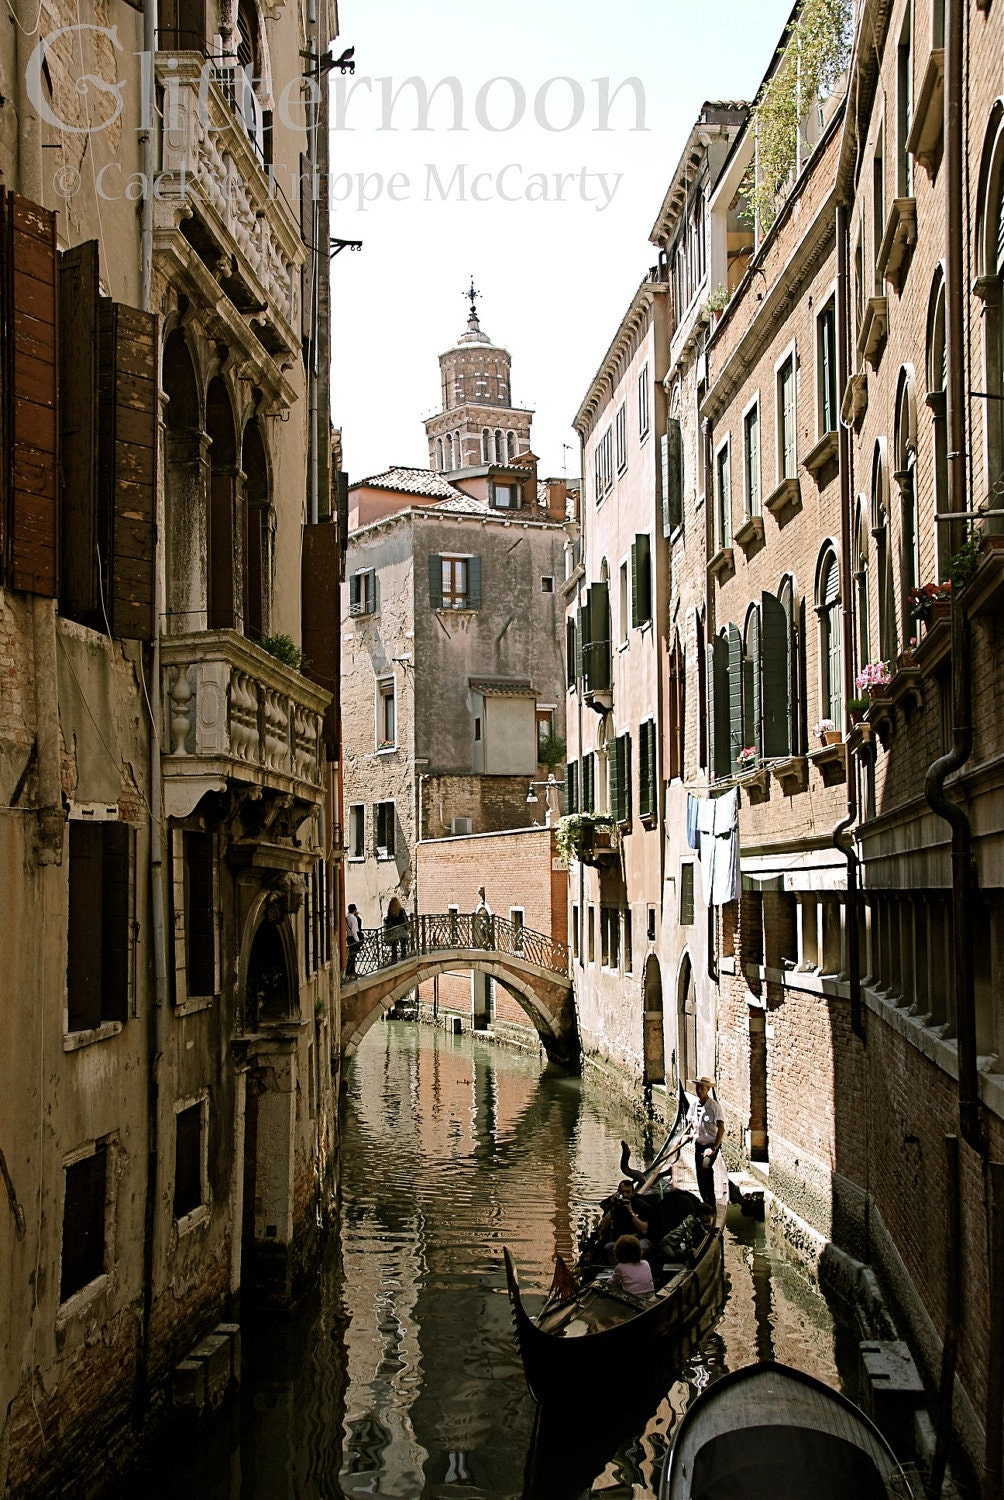 Serene Journey in Venice: 5x7 Matted Photographic Print - GlittermoonCards